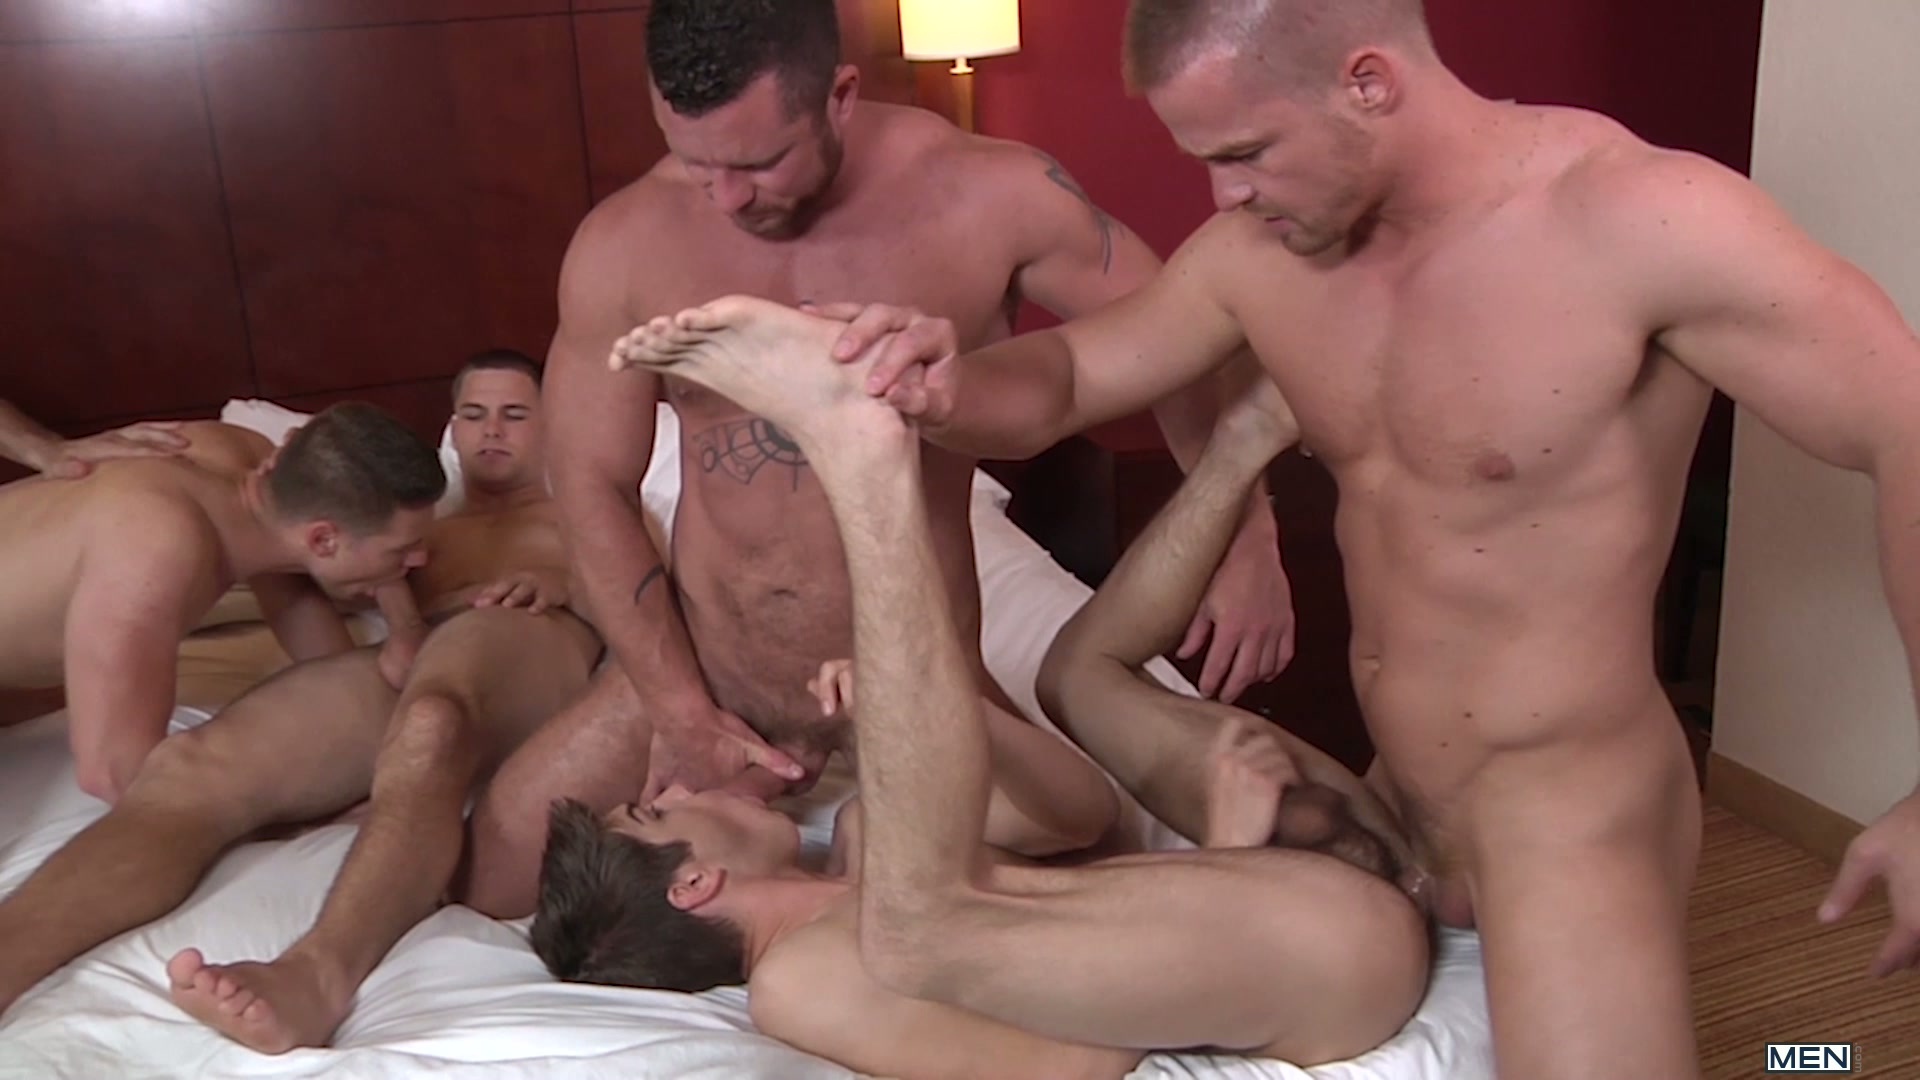 Watch Turn Me Into A Whore 3 – Jizz Orgy – Johnny Rapid – Jimmy Johnson – Charlie Harding – Liam Magnuson – Jack King – Riley Banks (MEN.COM) Gay Porn Tube Videos Gifs And Free XXX HD Sex Movies Photos Online